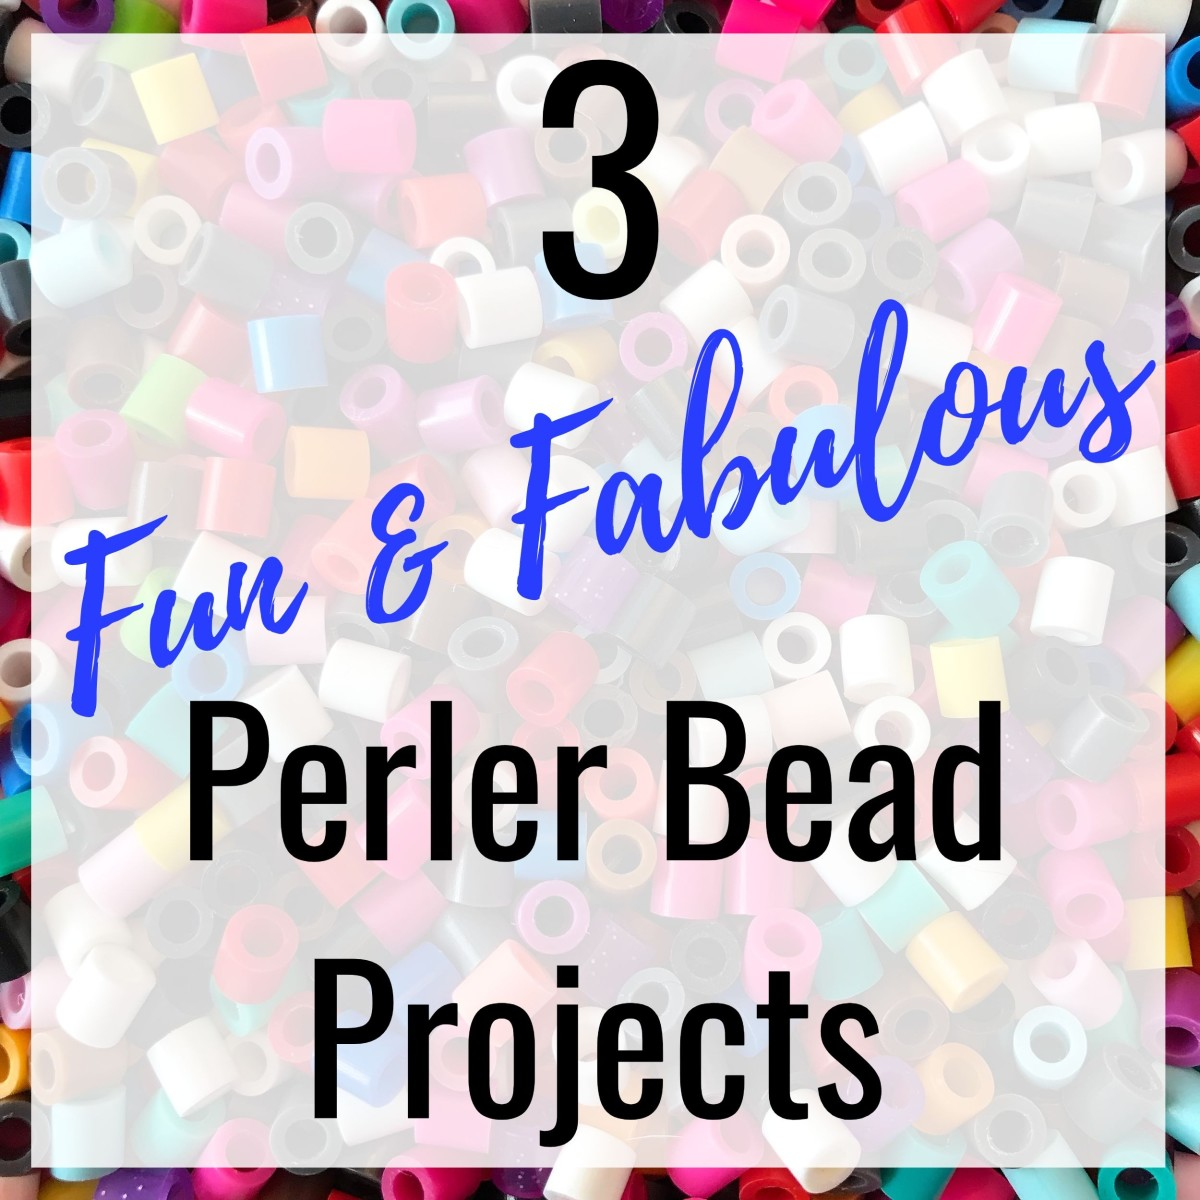 3 Fun & Fabulous Perler Bead Projects including, ear bud covers, a bowl and a bracelet.